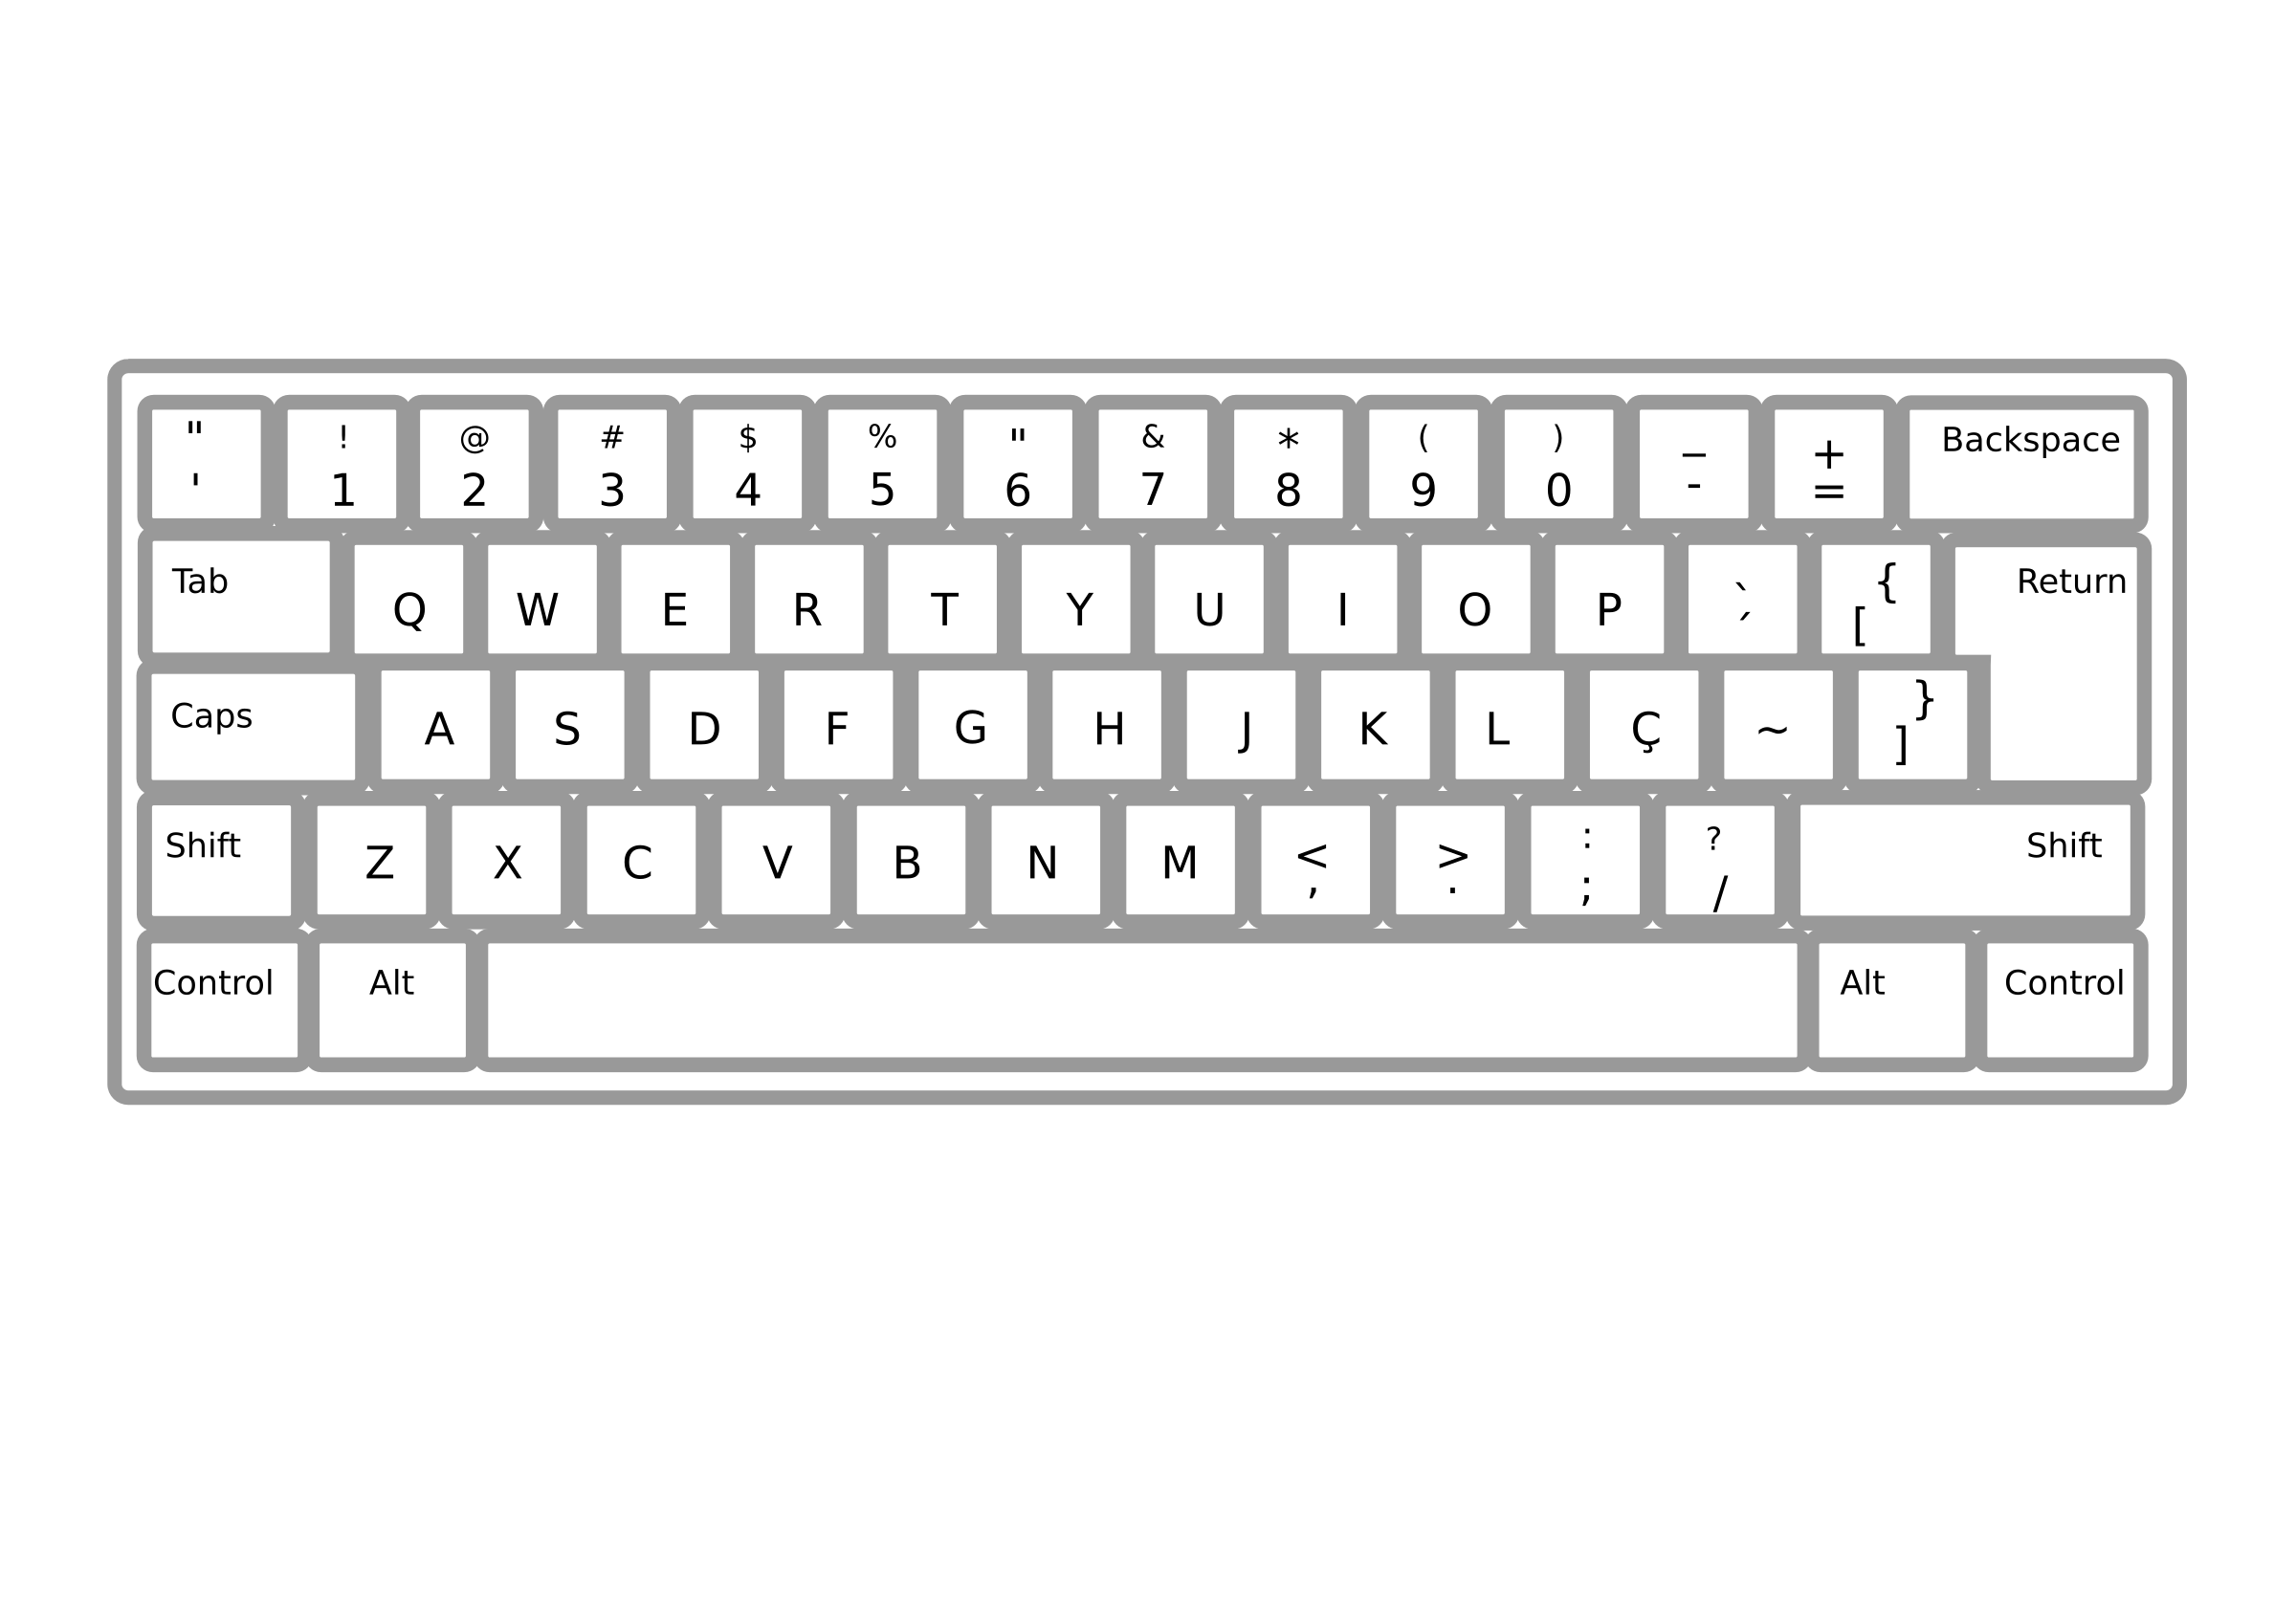 collection of images. White clipart keyboard